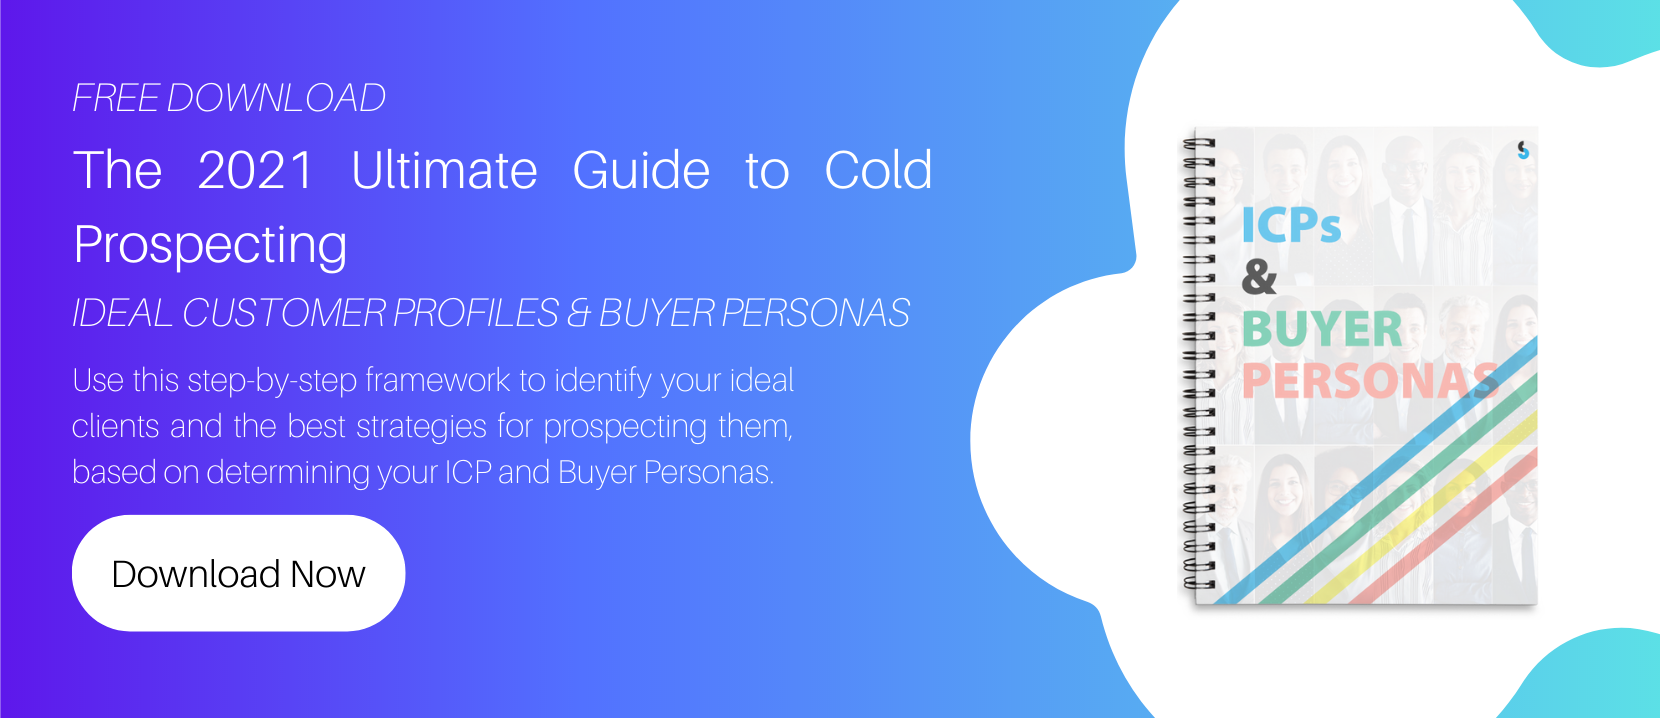 The 2021 Ultimate Guide to Cold Prospecting